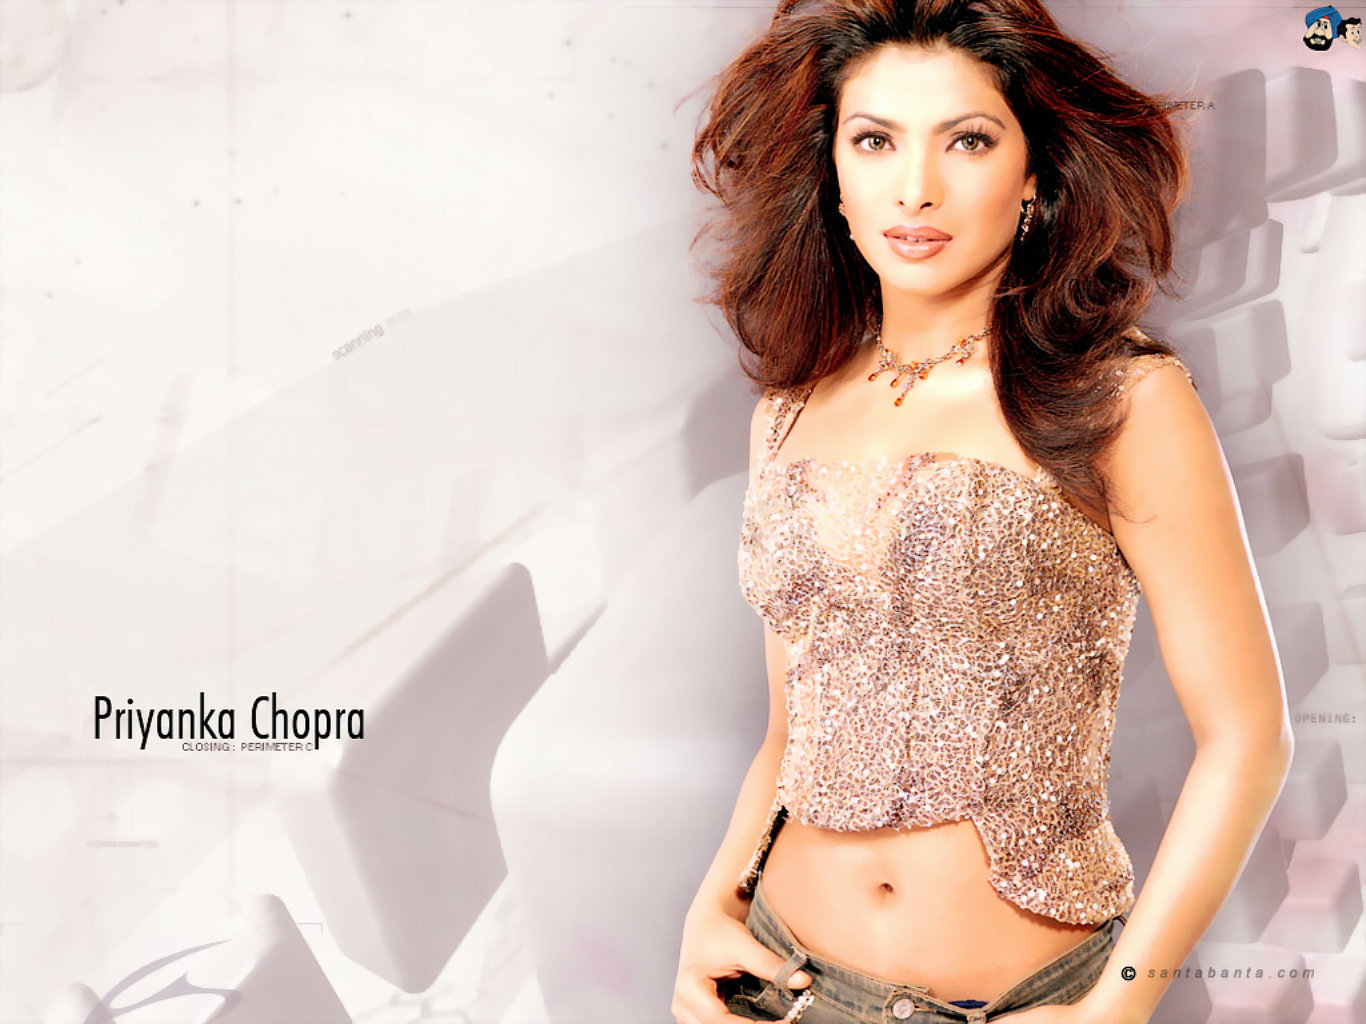 Priyanka Chopra Awesome Hot Desktop Wallpaper